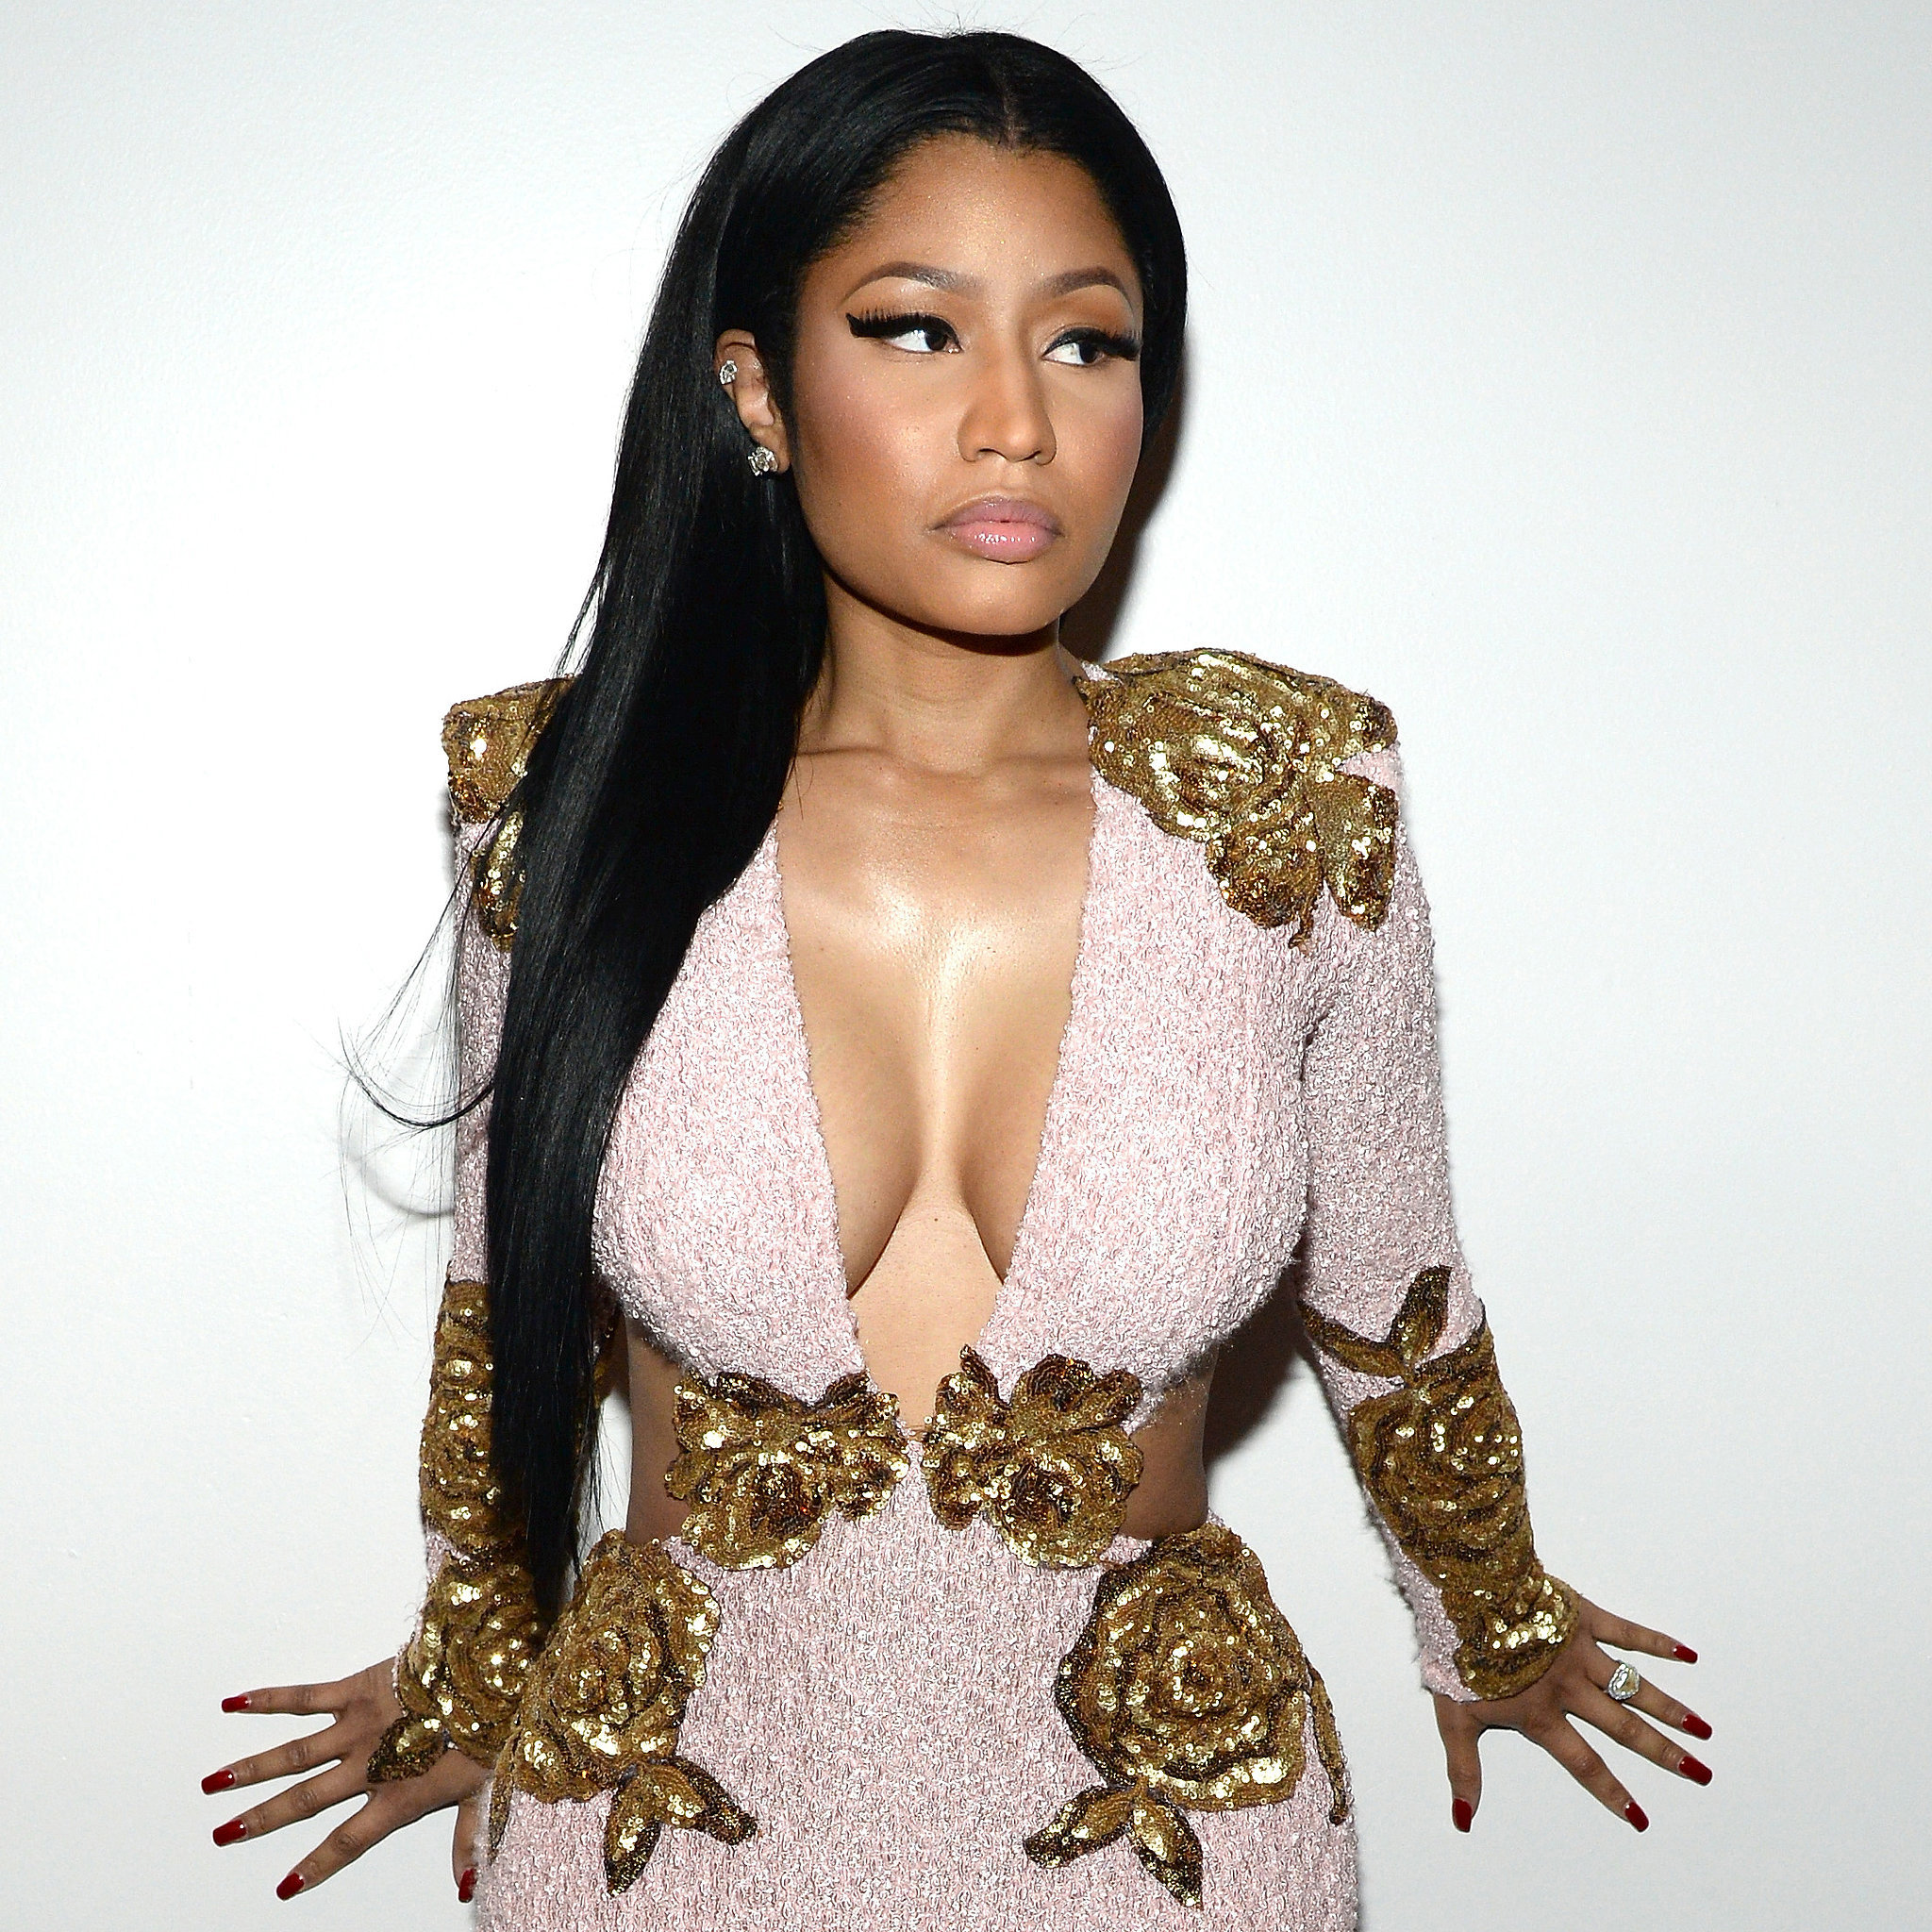 Oh Baby: Nicki Minaj Cryptic Tweet Gets People Talking